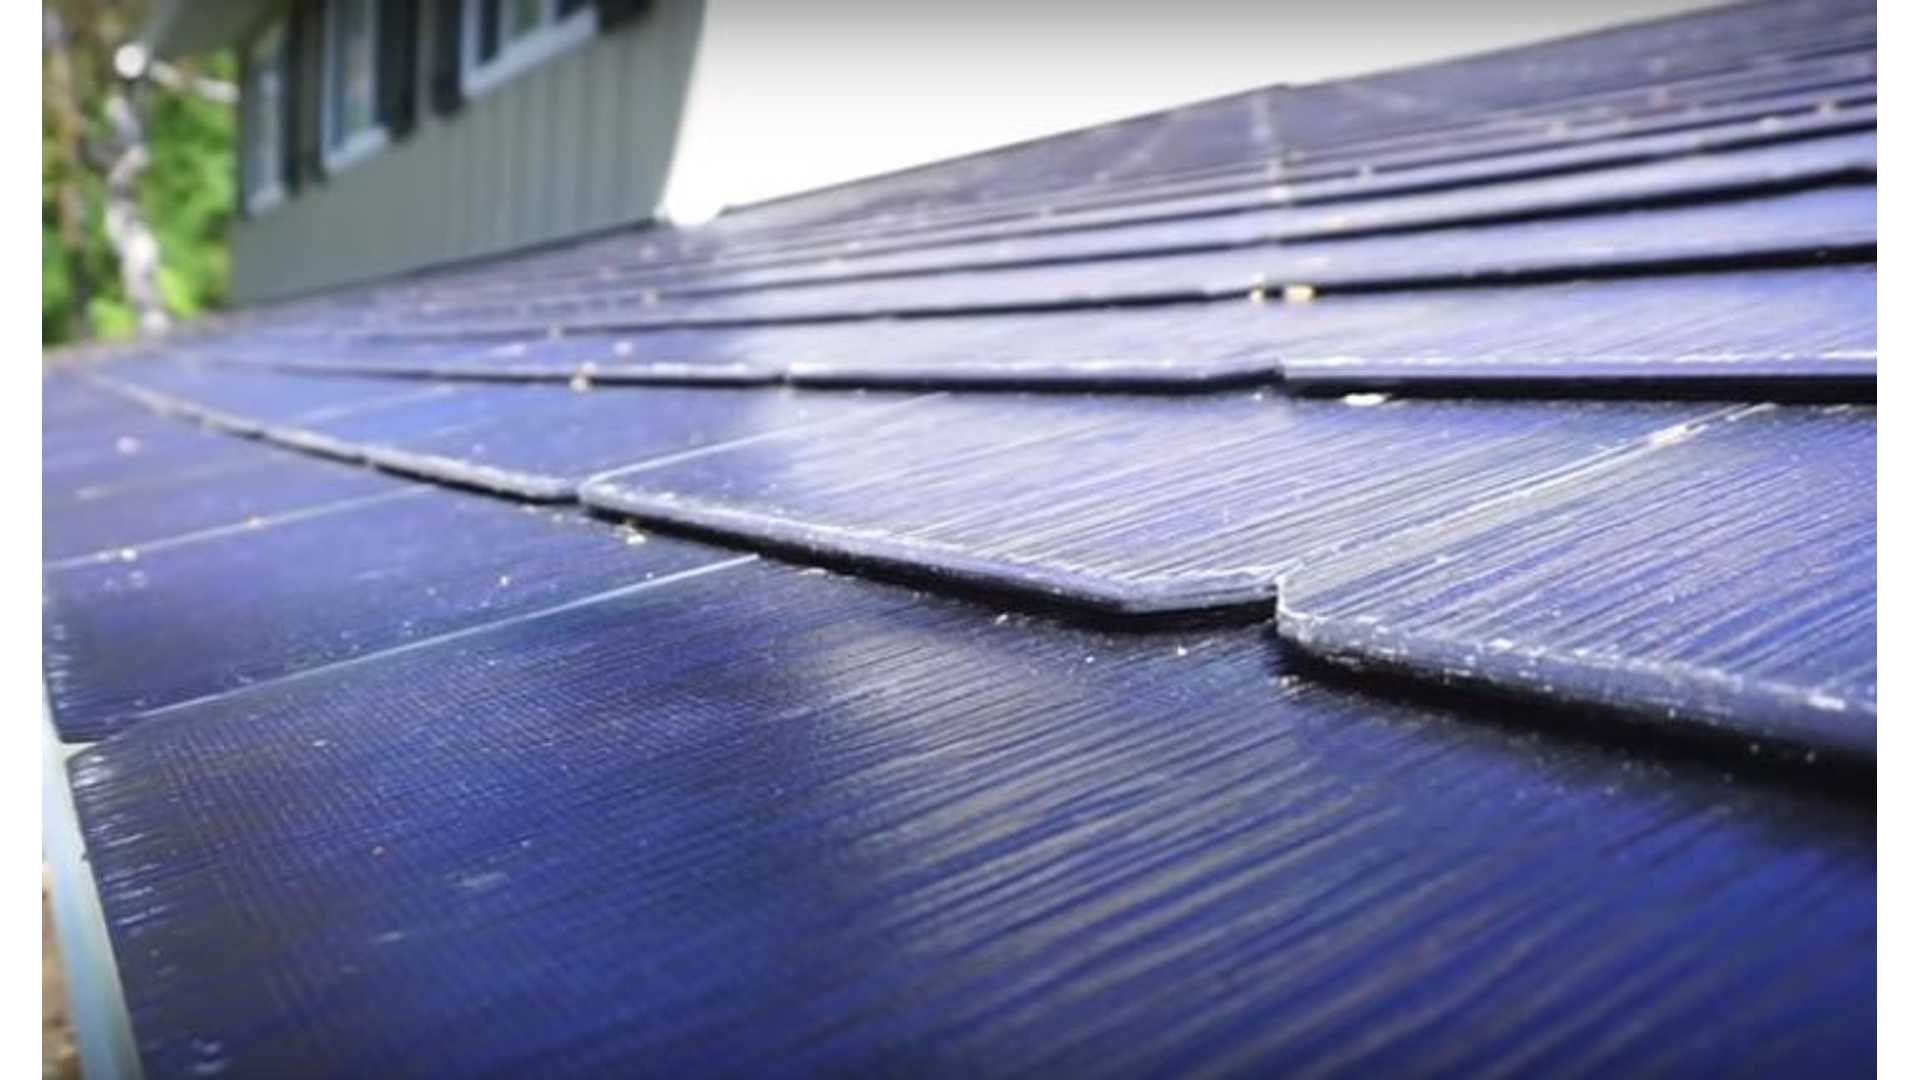 Tesla Solar Roof Order >> See Rare Look At Tesla Solar Roof In The Wild Plus Exclusive Interview